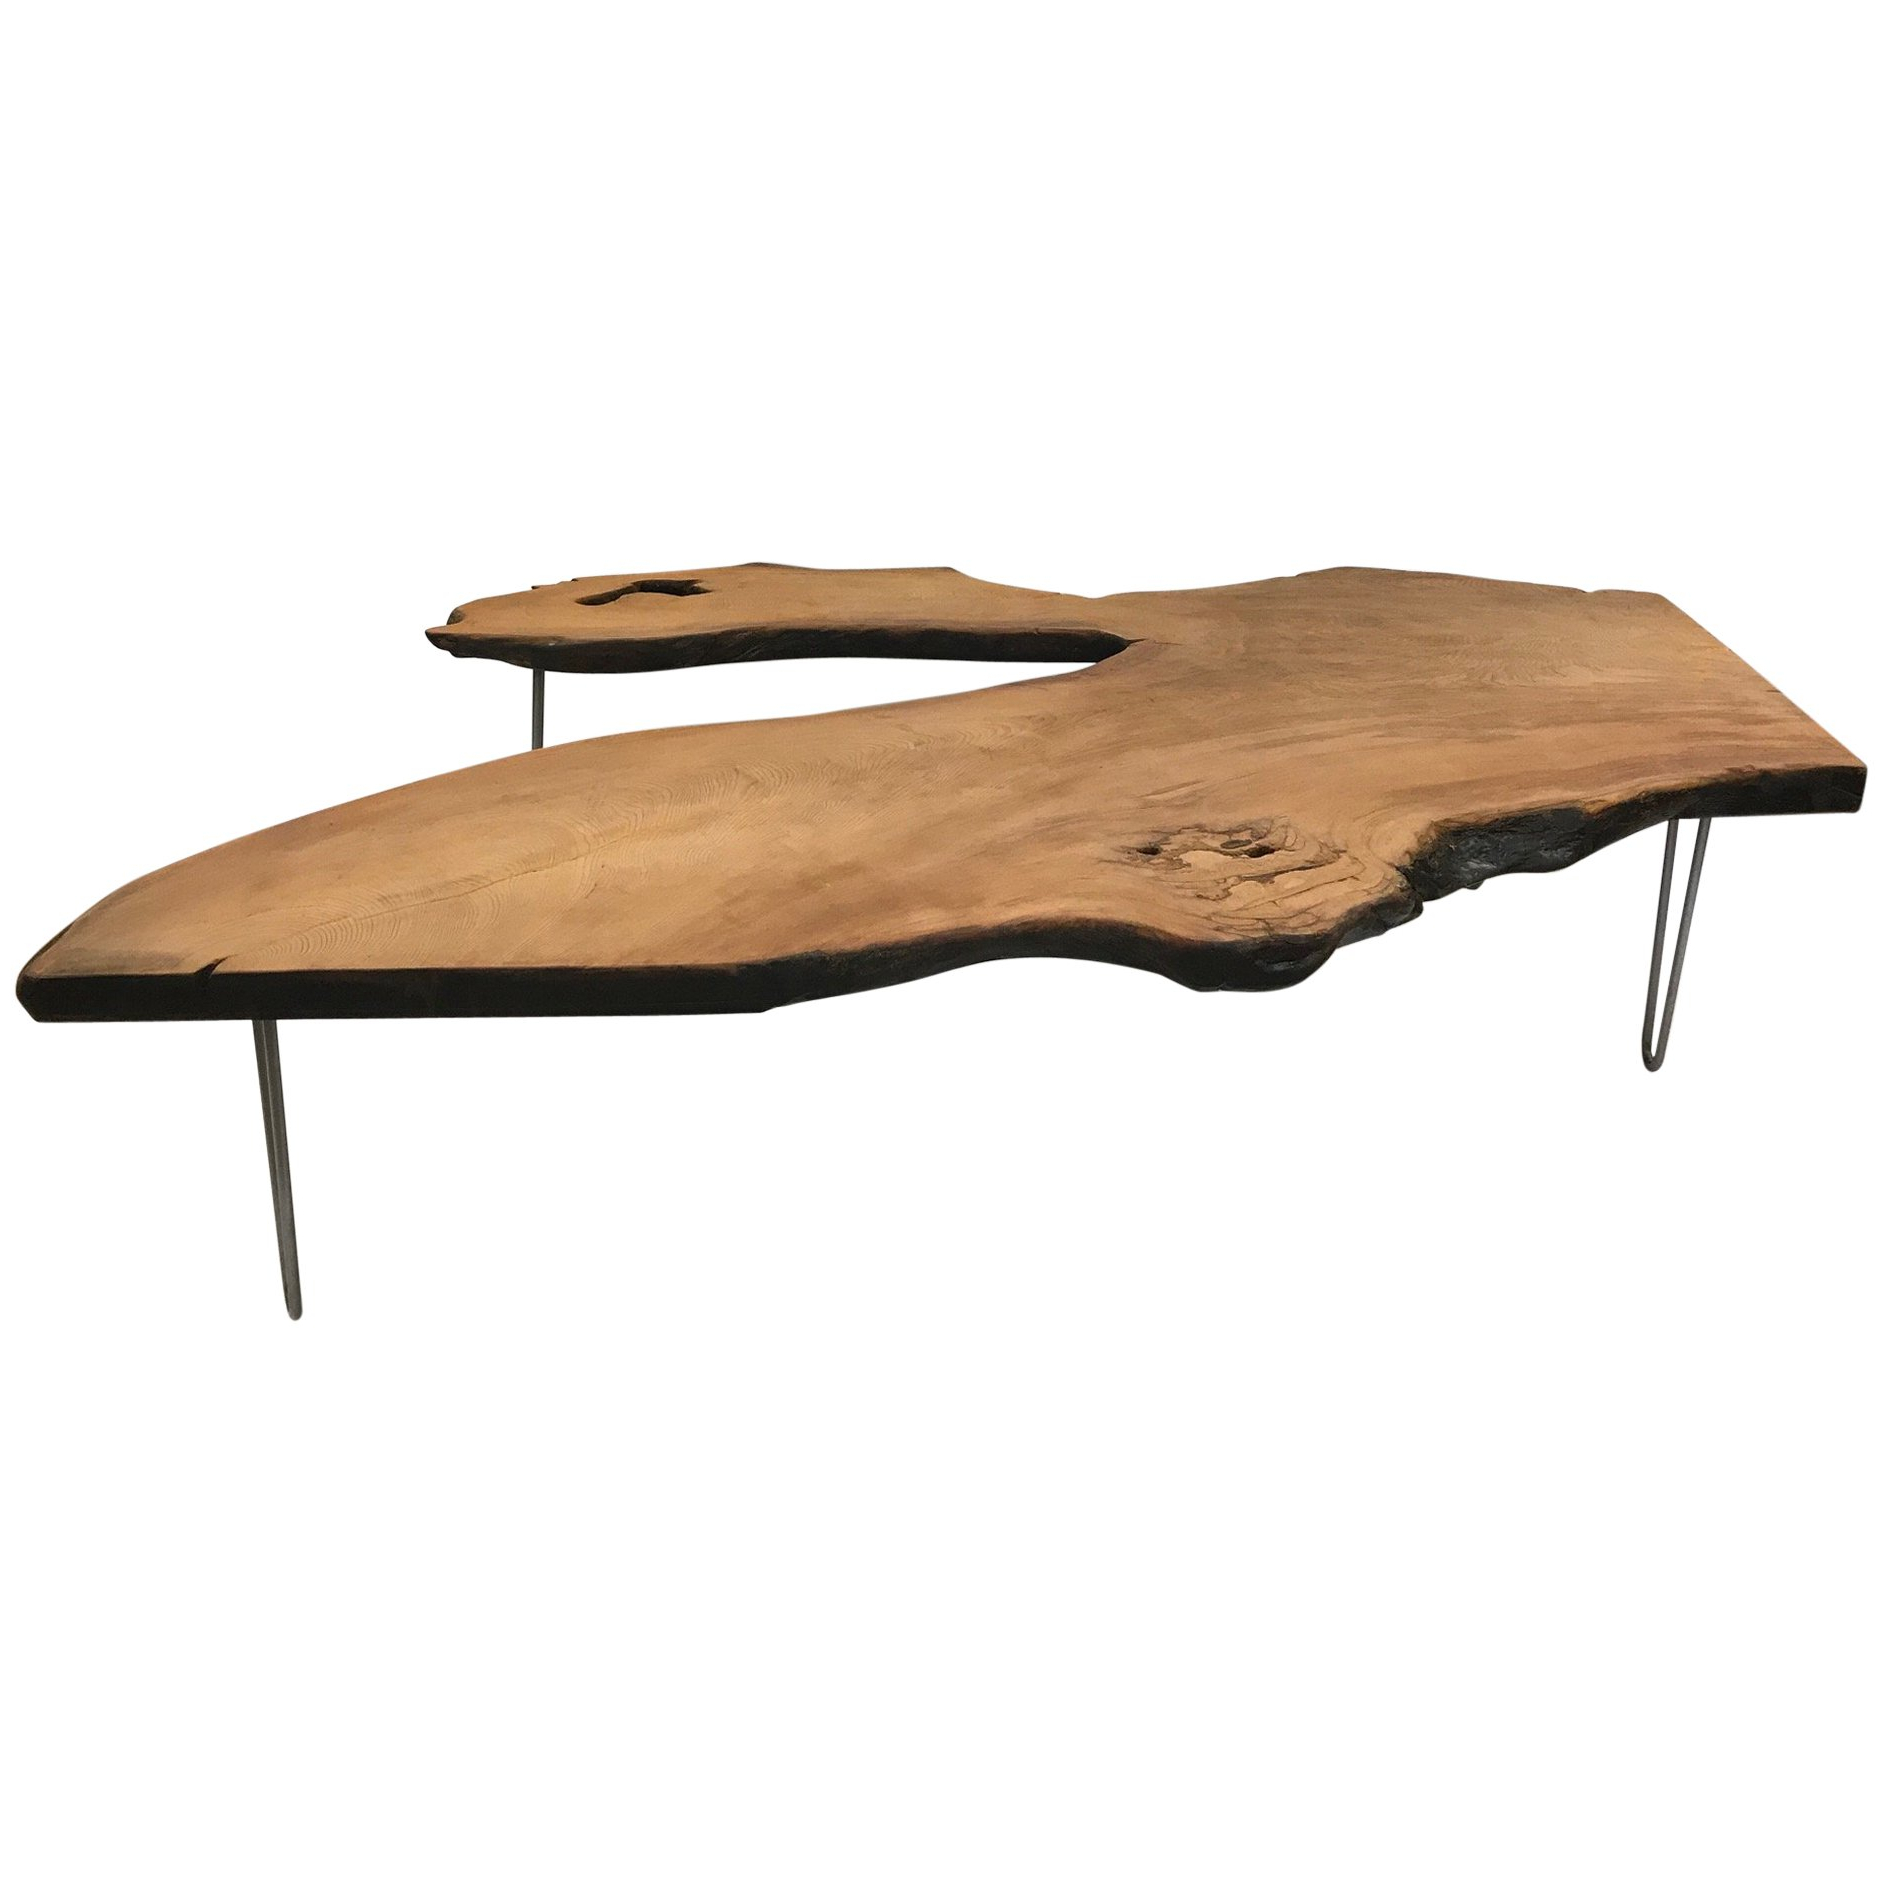 Current Live Edge Teak Coffee Tables Pertaining To Large Organic Teak Live Edge Coffee Table For Sale At 1stdibs (View 19 of 20)